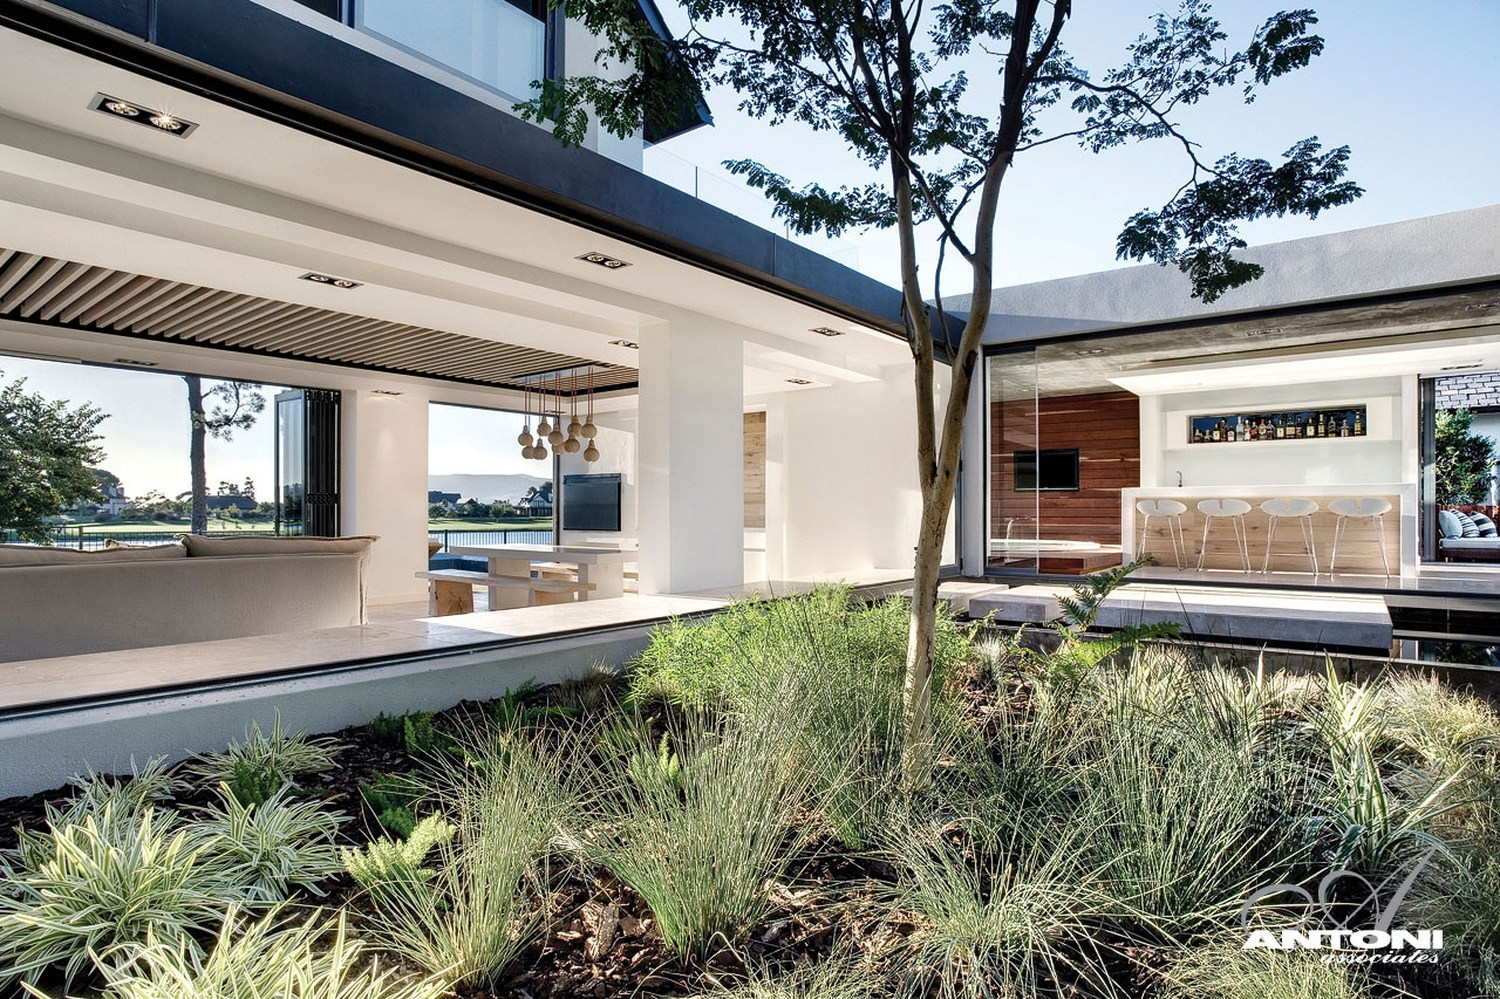 Antoni associate has completed the interior of the pearl valley 334 house located in cape town south africa photos by adam letch